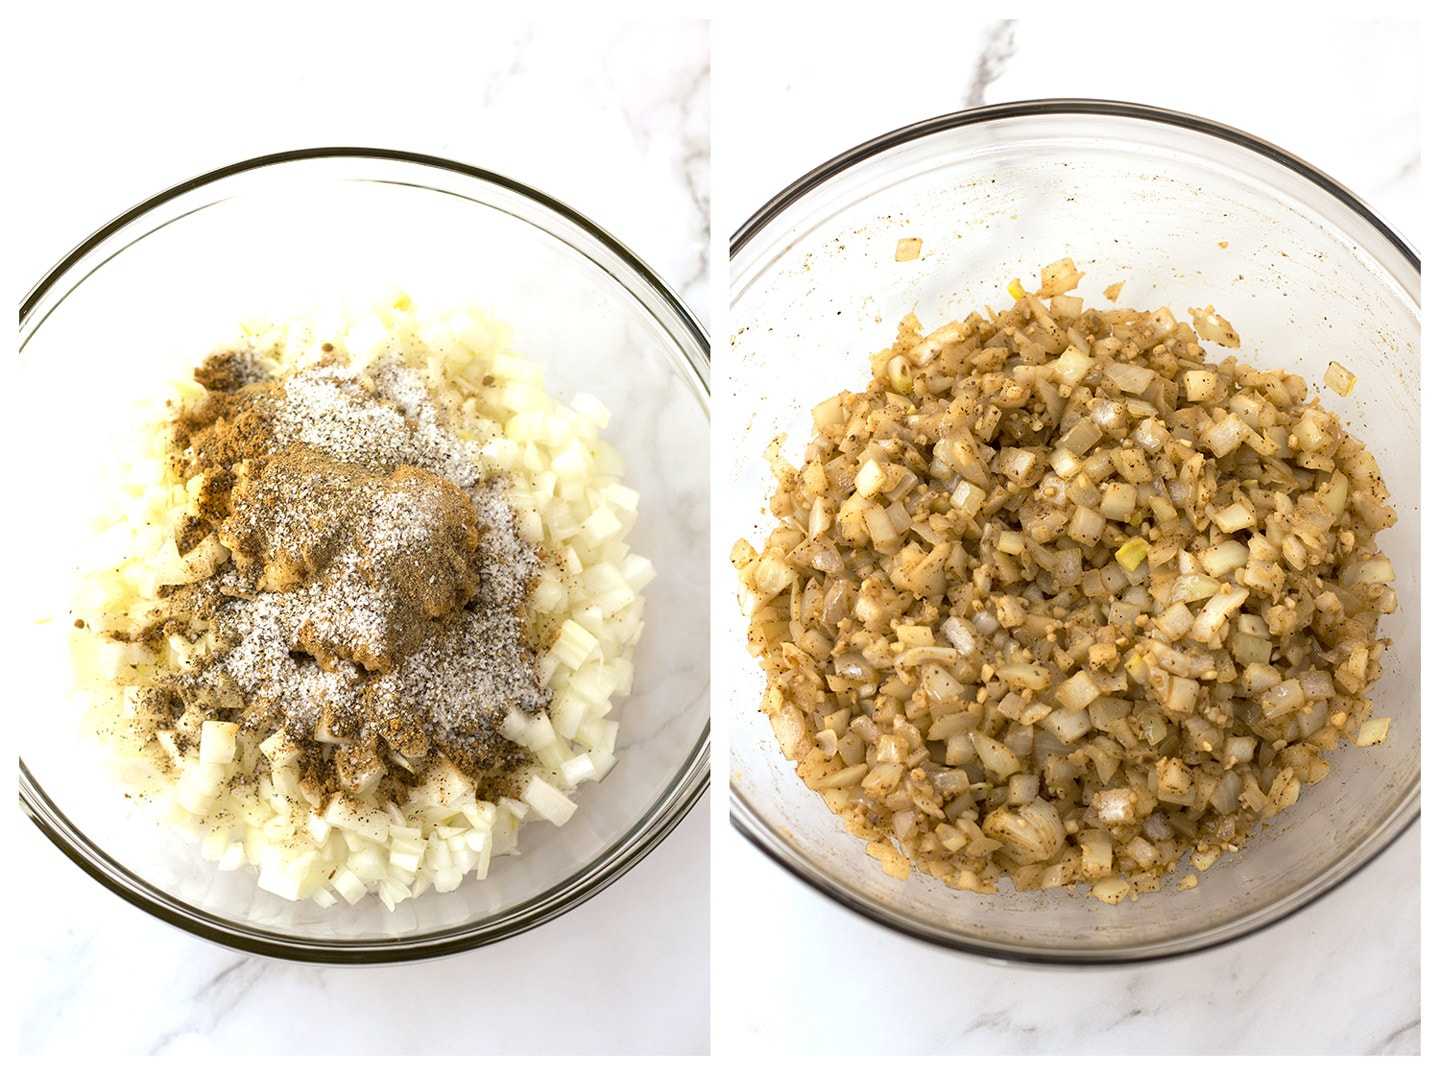 Onions and spices in bowl before and after microwaving.